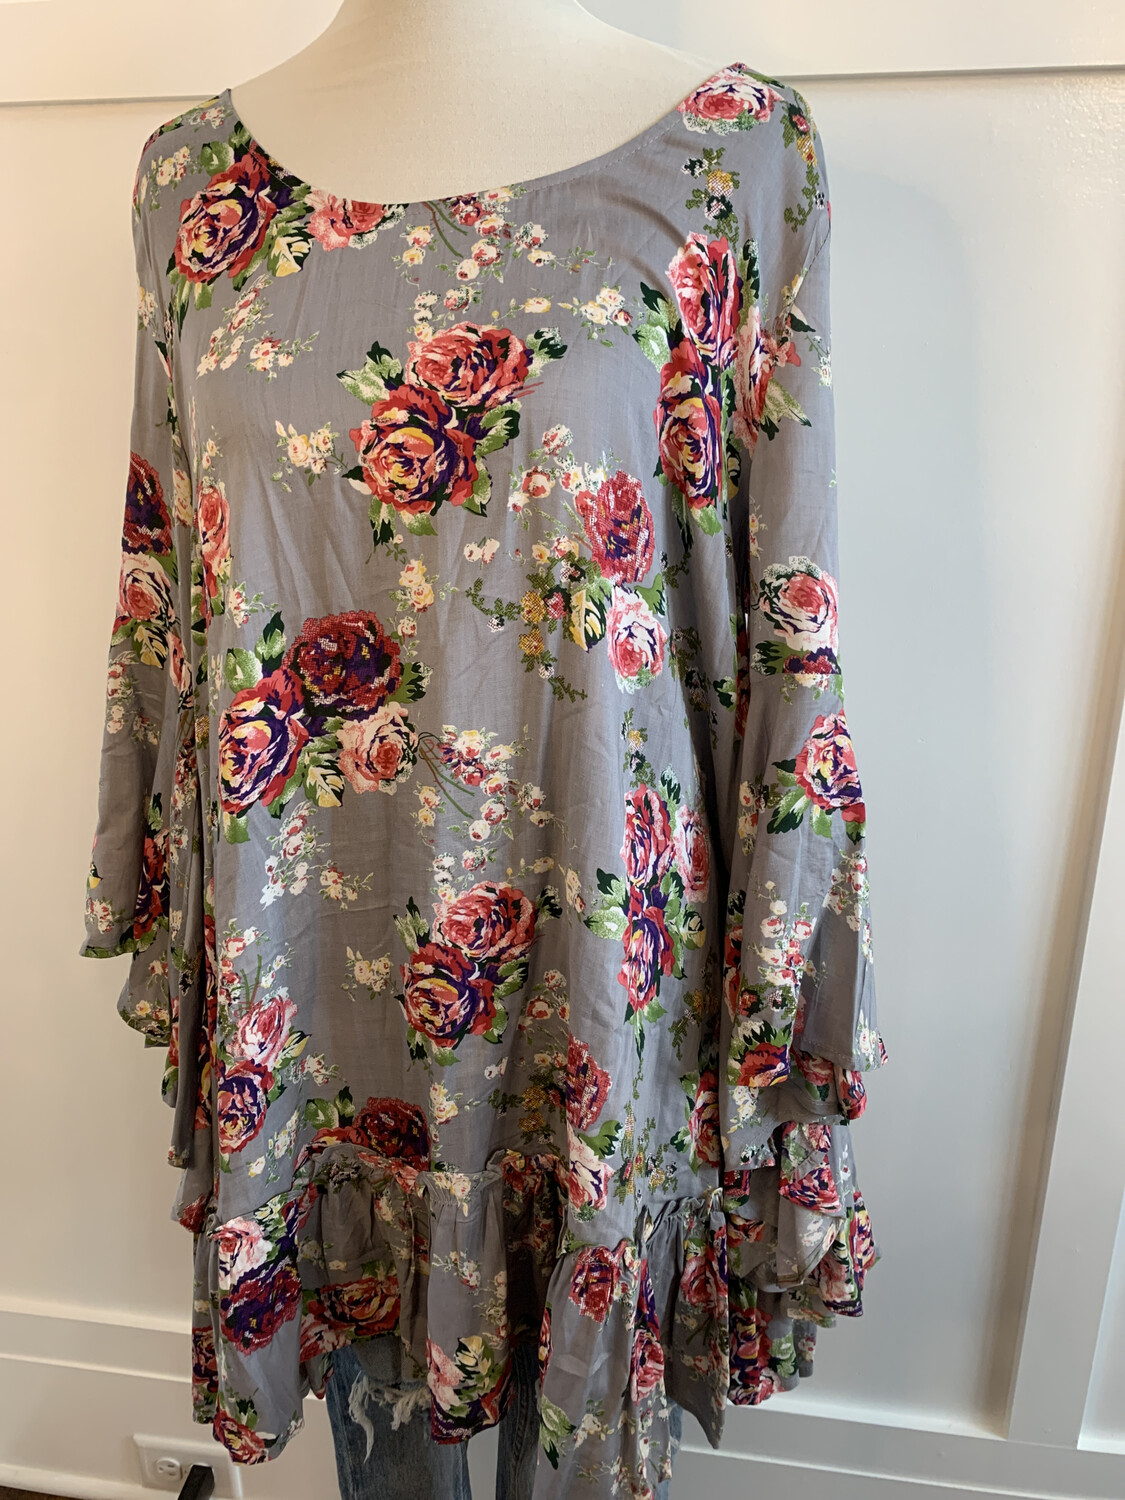 Umgee Grey Floral Ruffle Bottom Tunic Top - L